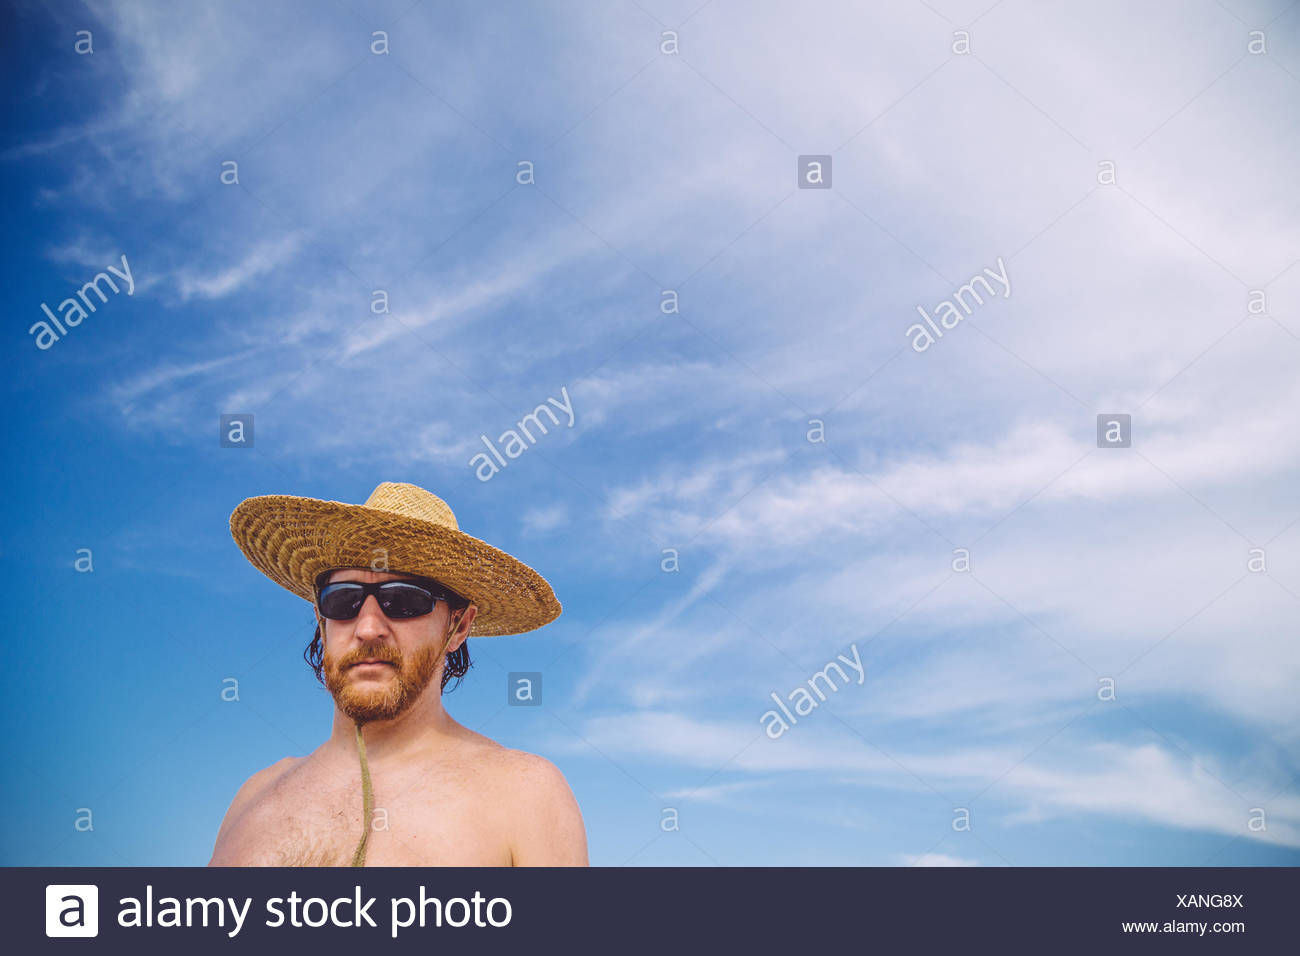 Low Angle View Of Shirtless Mature Man Wearing Hat Against Sky - Stock Image